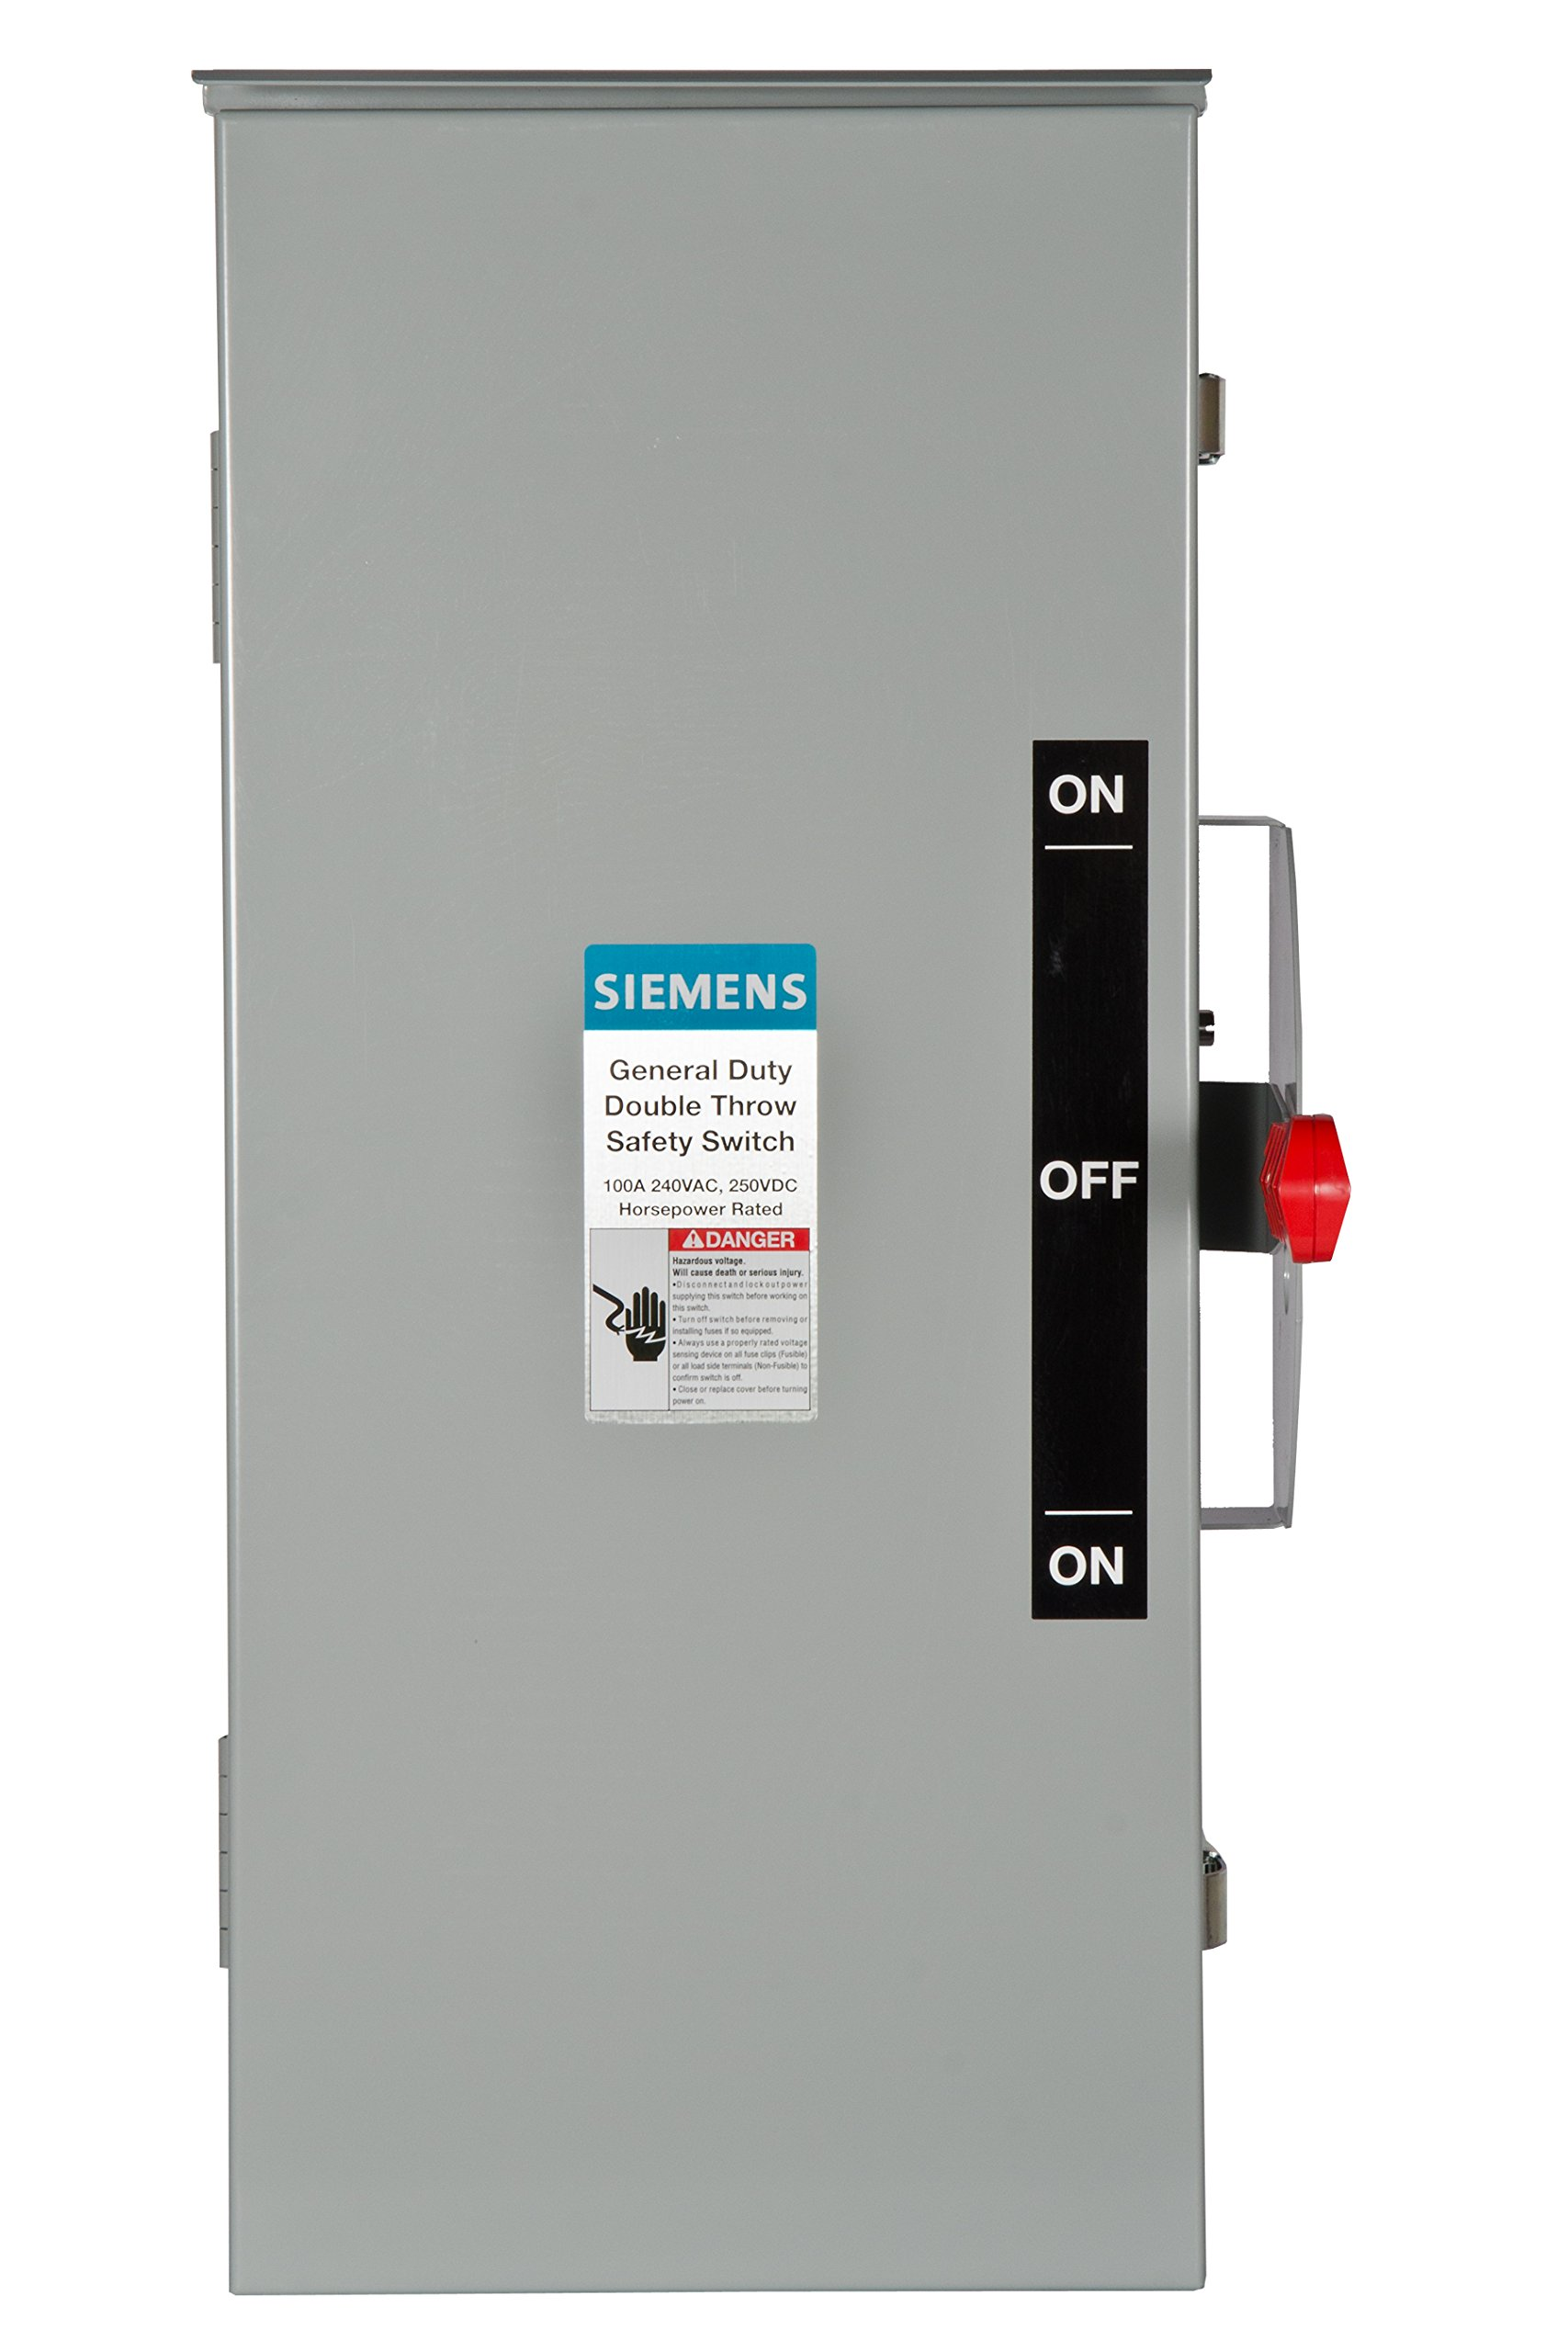 Siemens DTGNF323R 100-Amp, 3 Pole, 240-volt, 3 Wire, Non-Fused General Duty, Double Throw, Type 3R